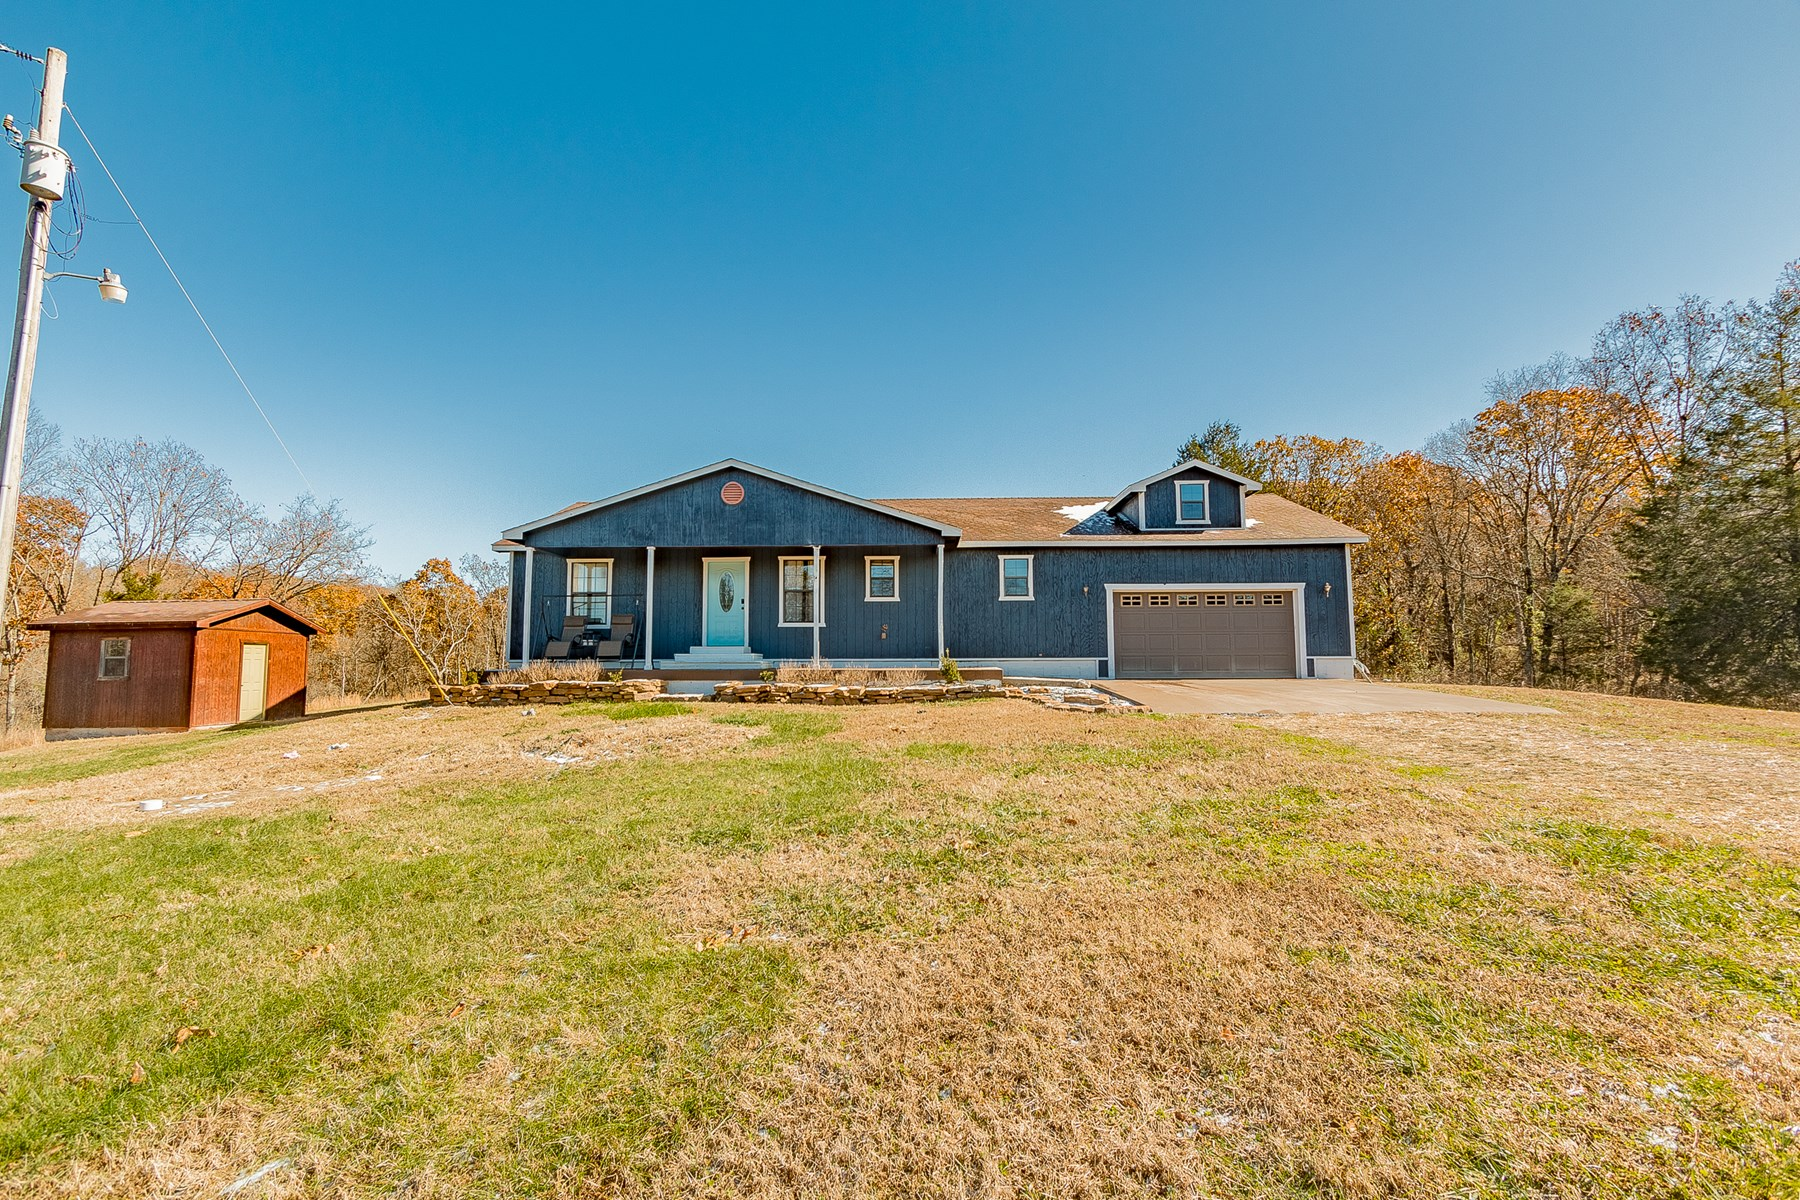 Country Home for Sale Just North of Arkansas Border